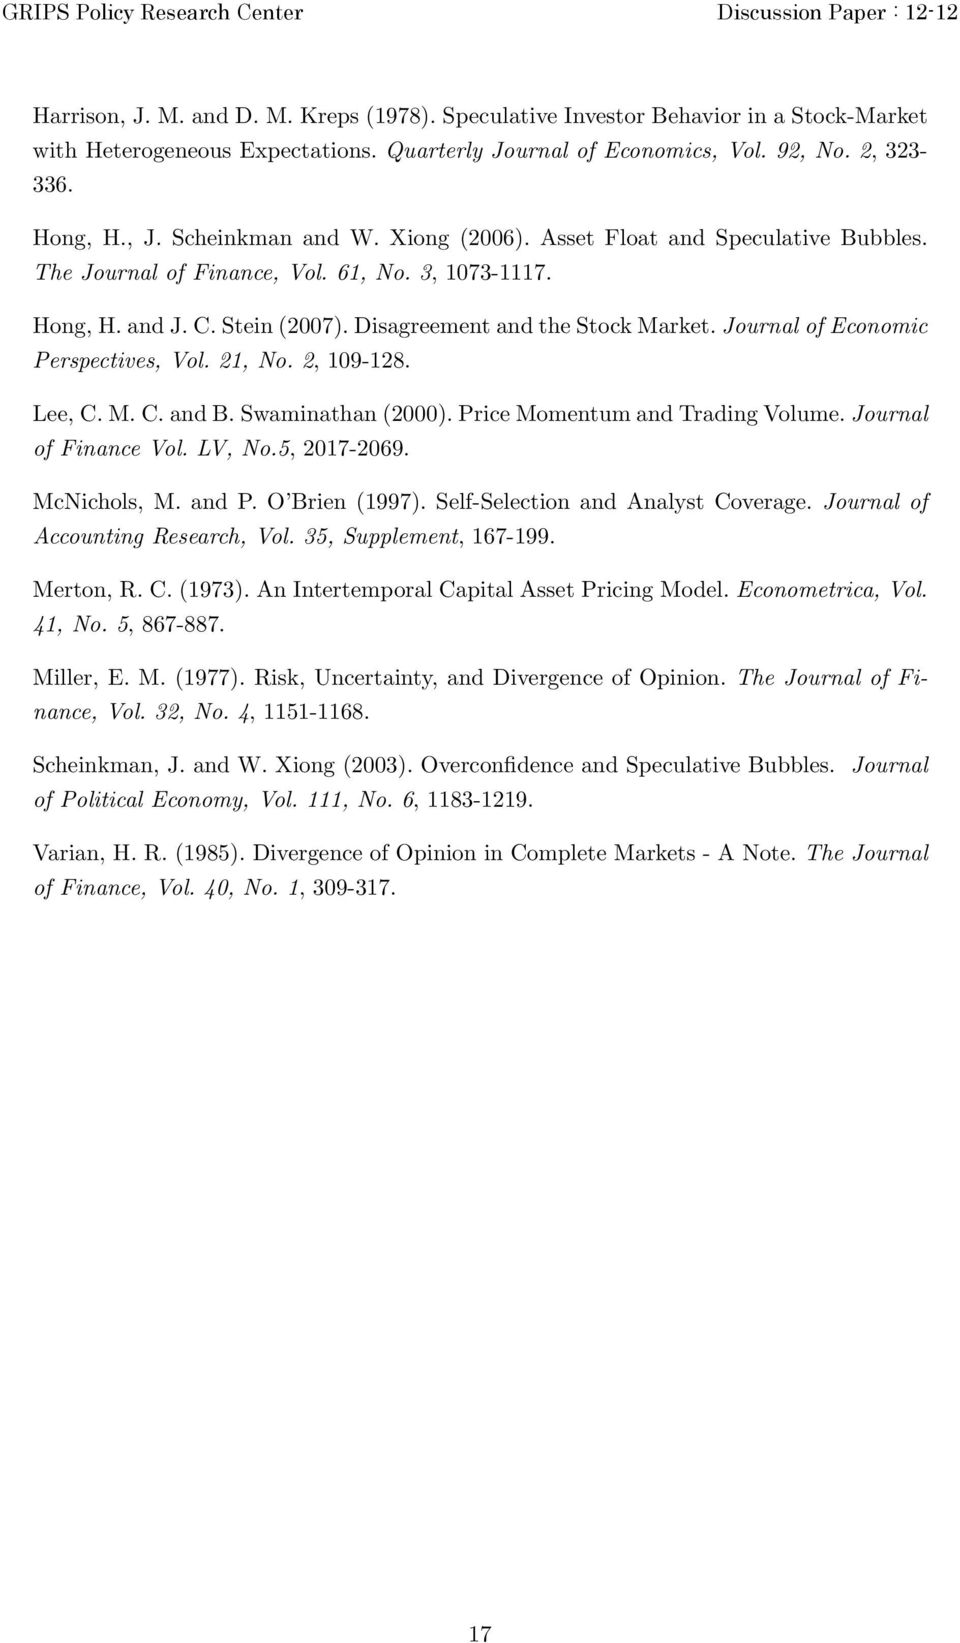 Journal of Economic Perspectives, Vol. 21, No. 2, 109-128. Lee, C. M. C. and B. Swaminathan (2000). Price Momentum and Trading Volume. Journal of Finance Vol. LV, No.5, 2017-2069. McNichols, M. and P.